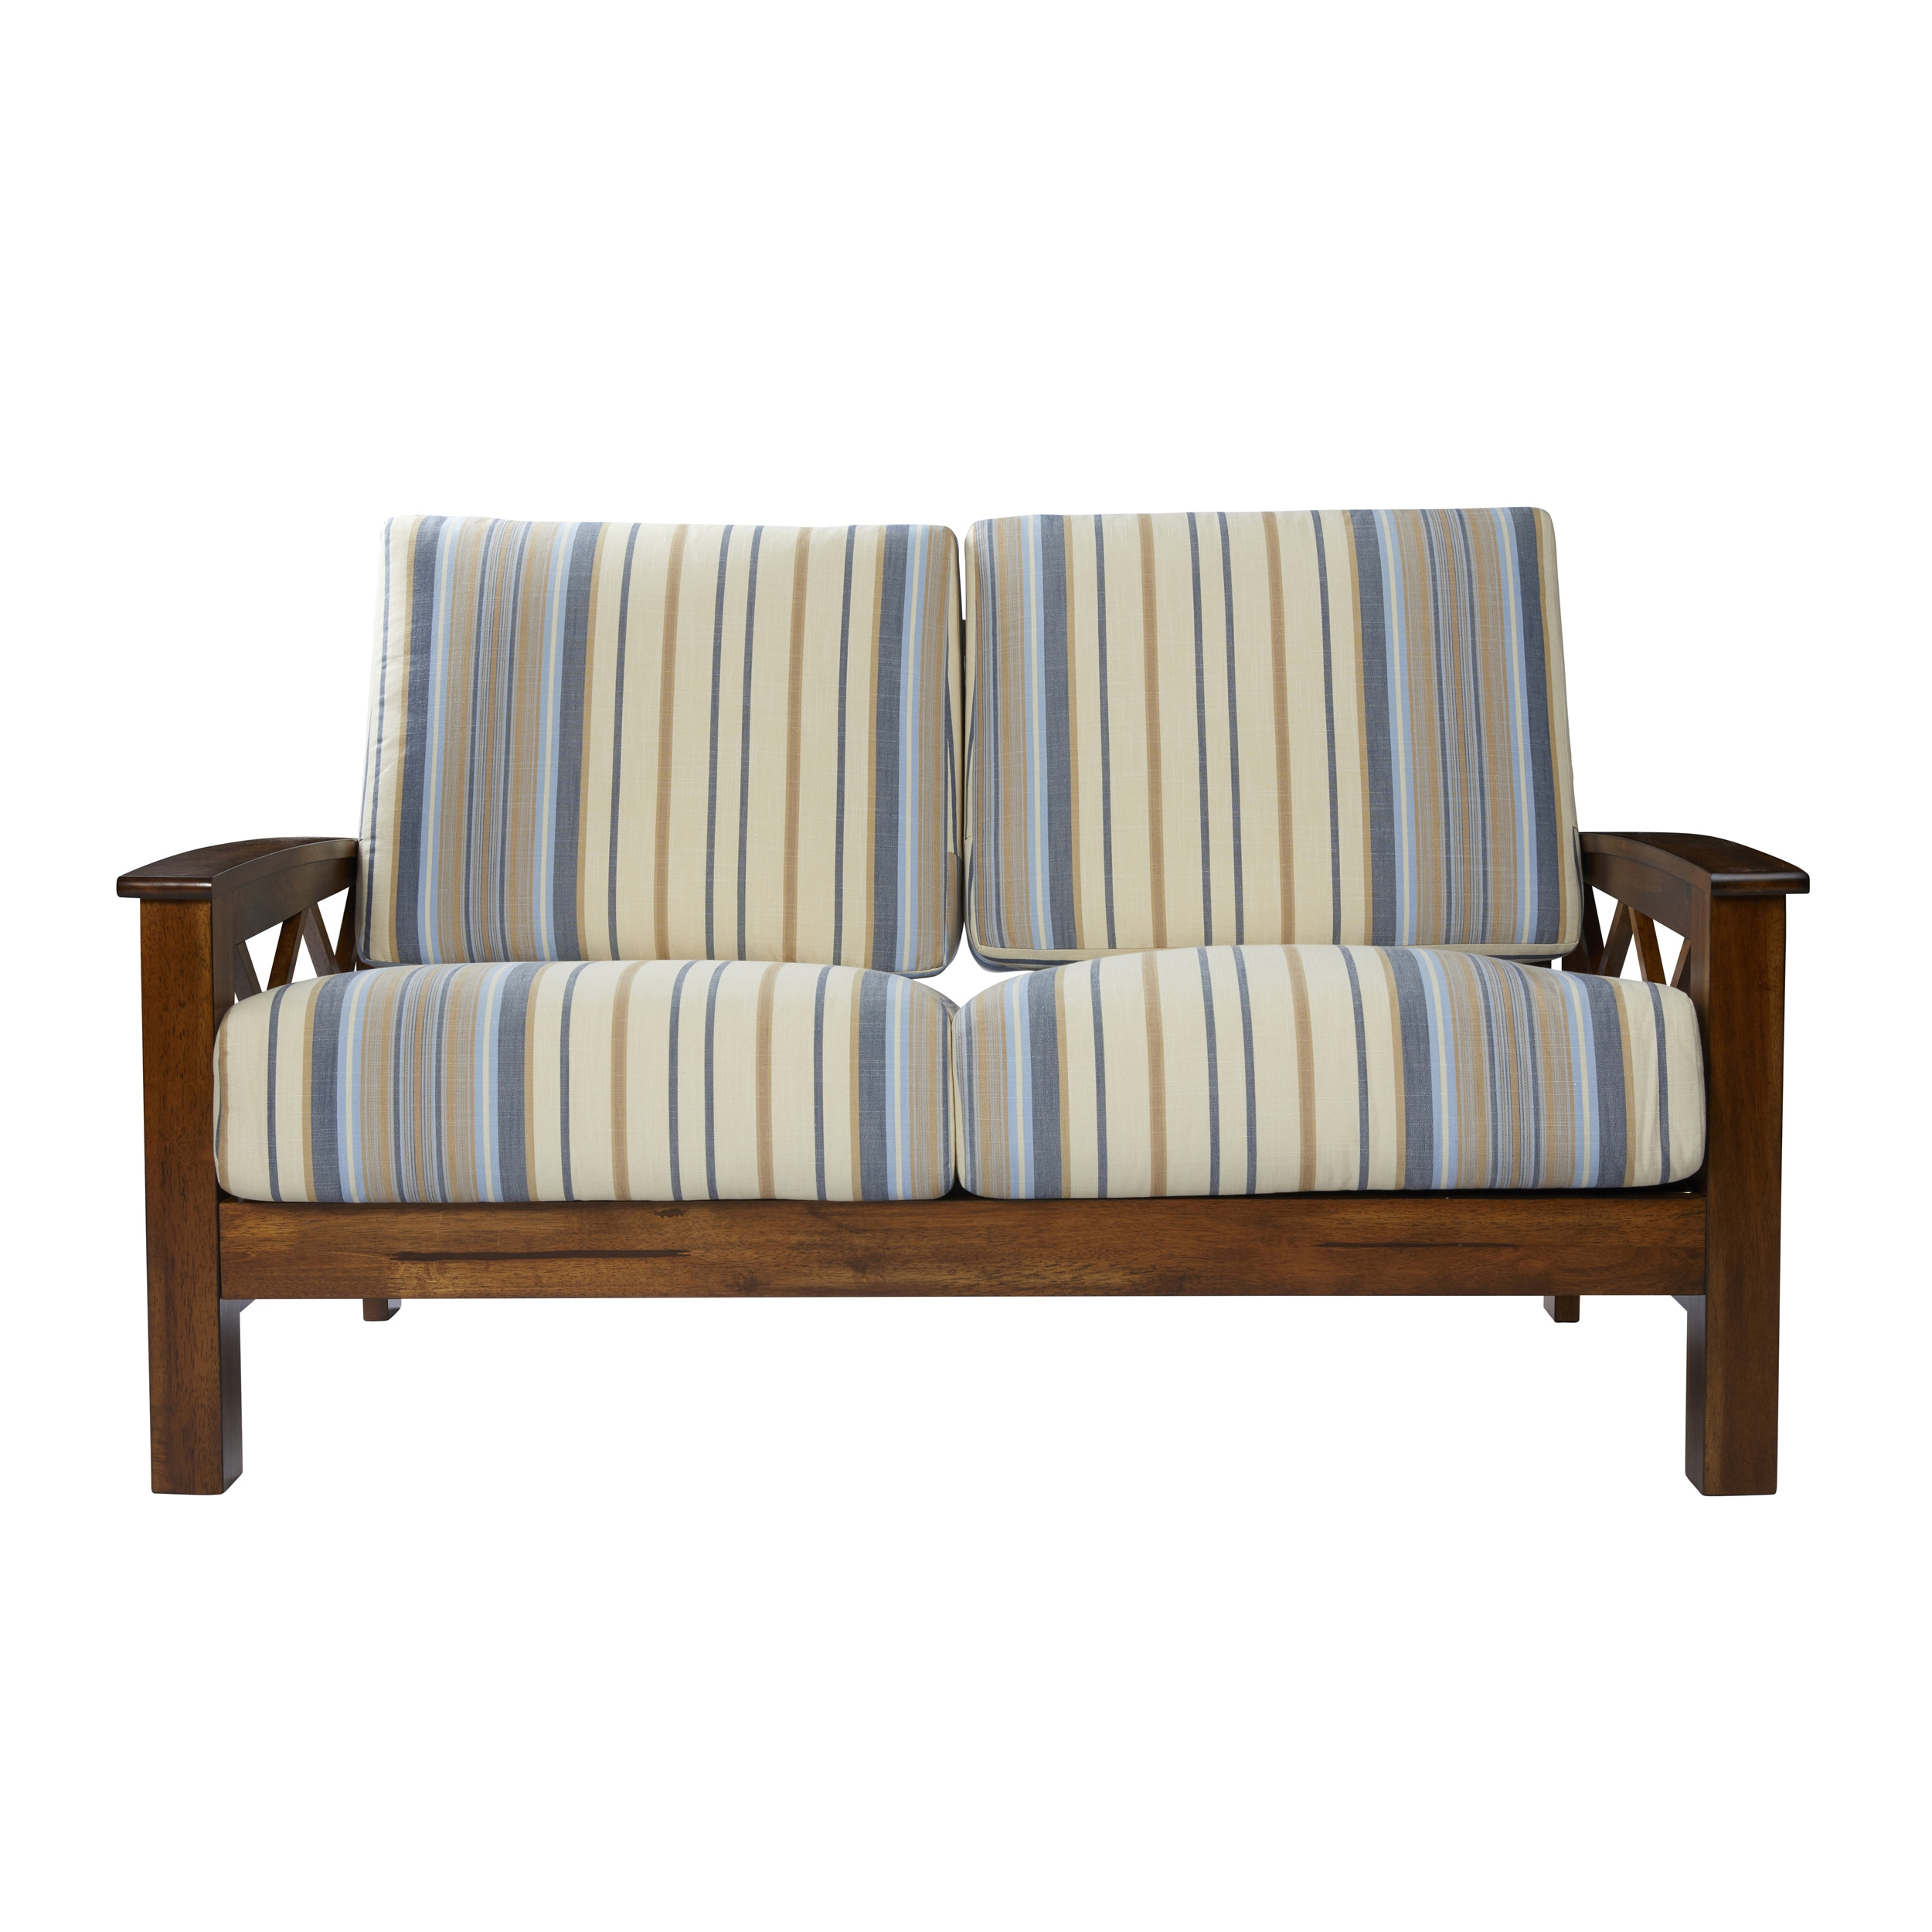 sofa back loveseat chair pillow image wood and frame piece